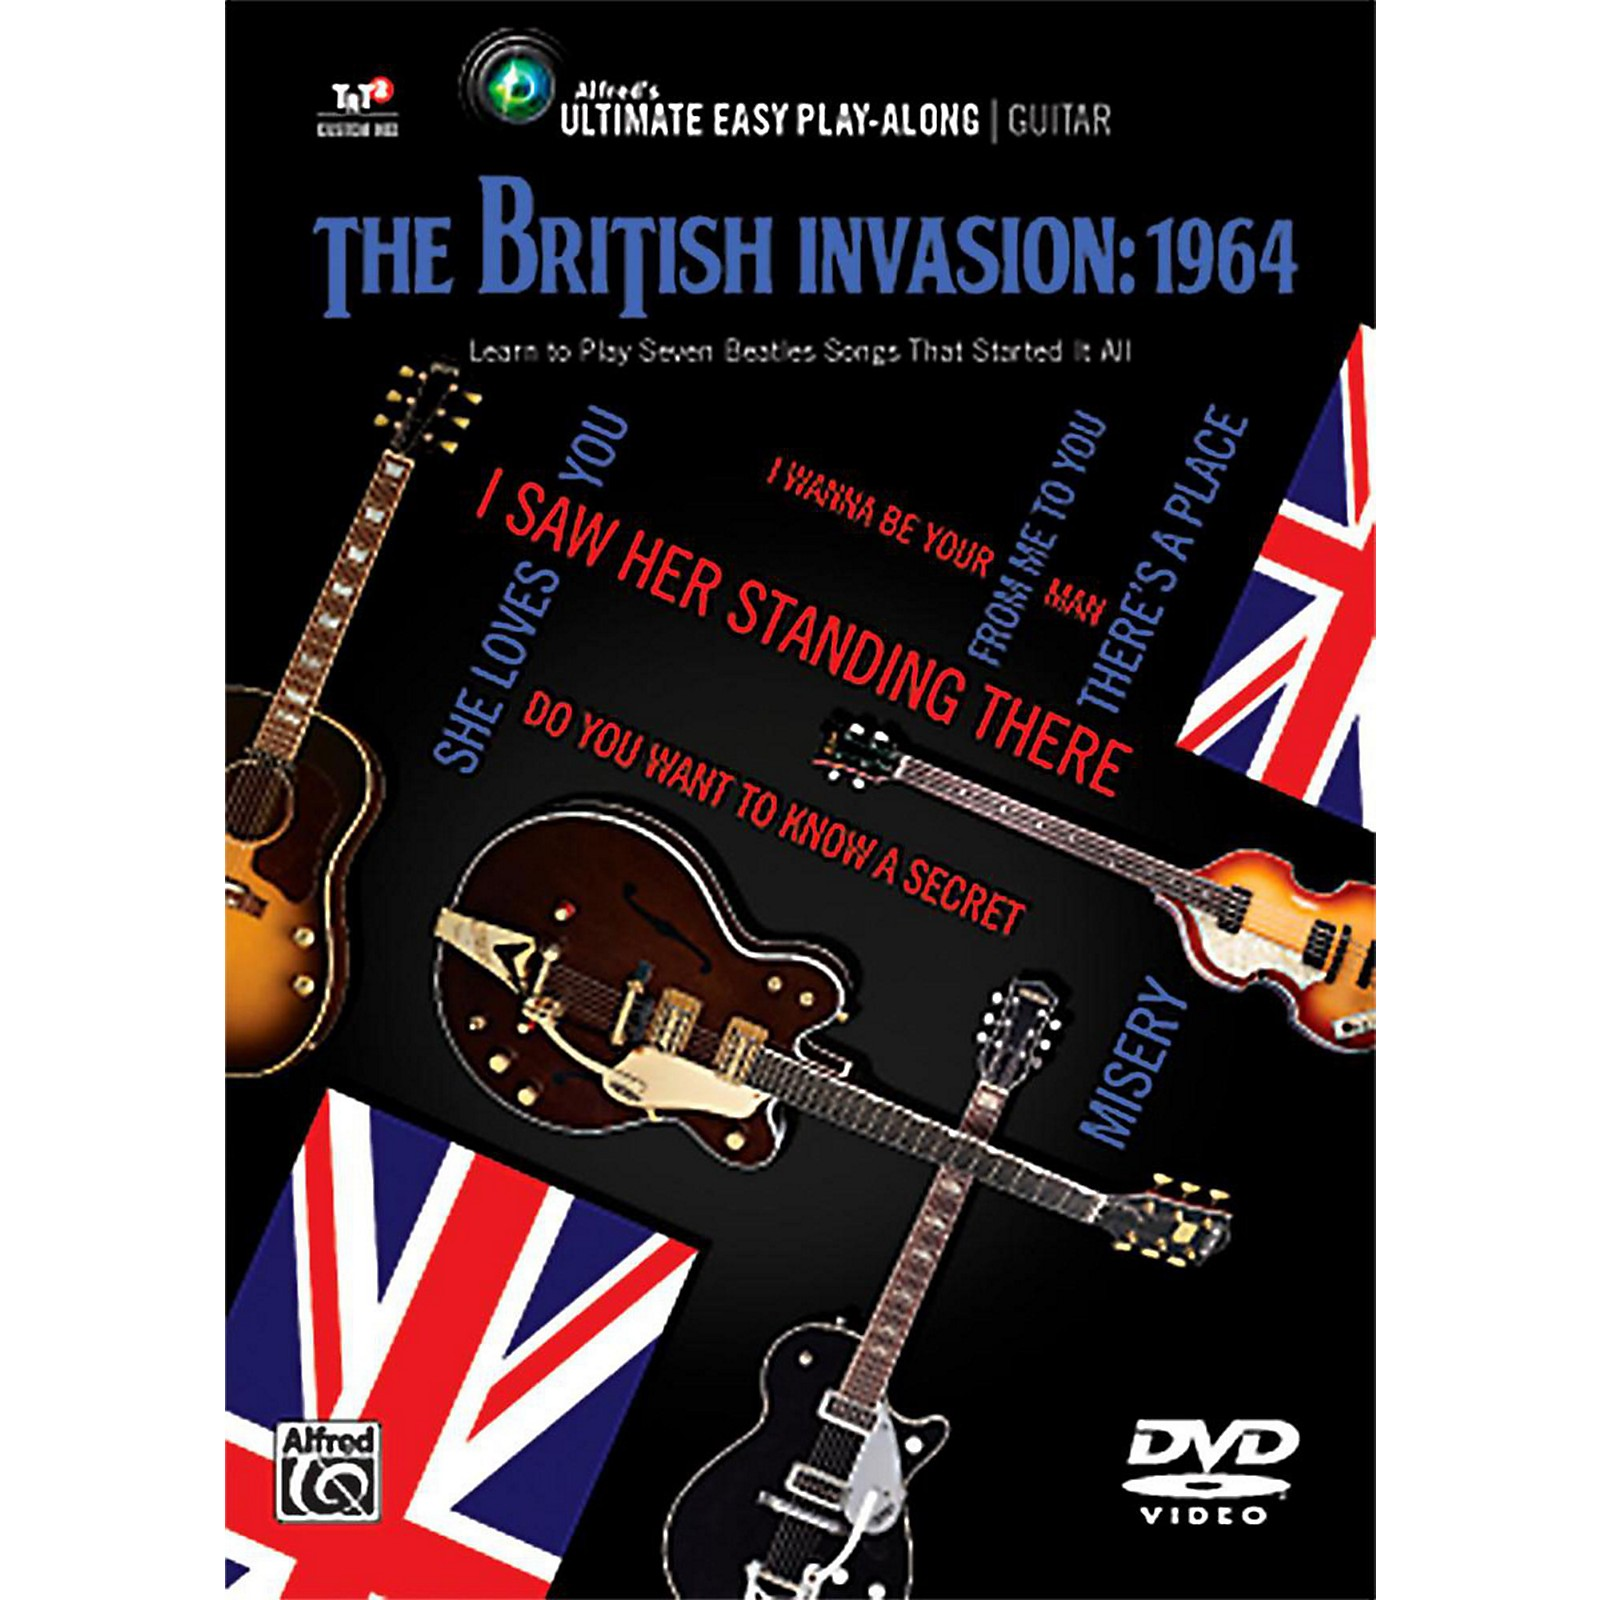 Alfred The British Invasion 1964 - Ultimate Easy Guitar Play-Along DVD